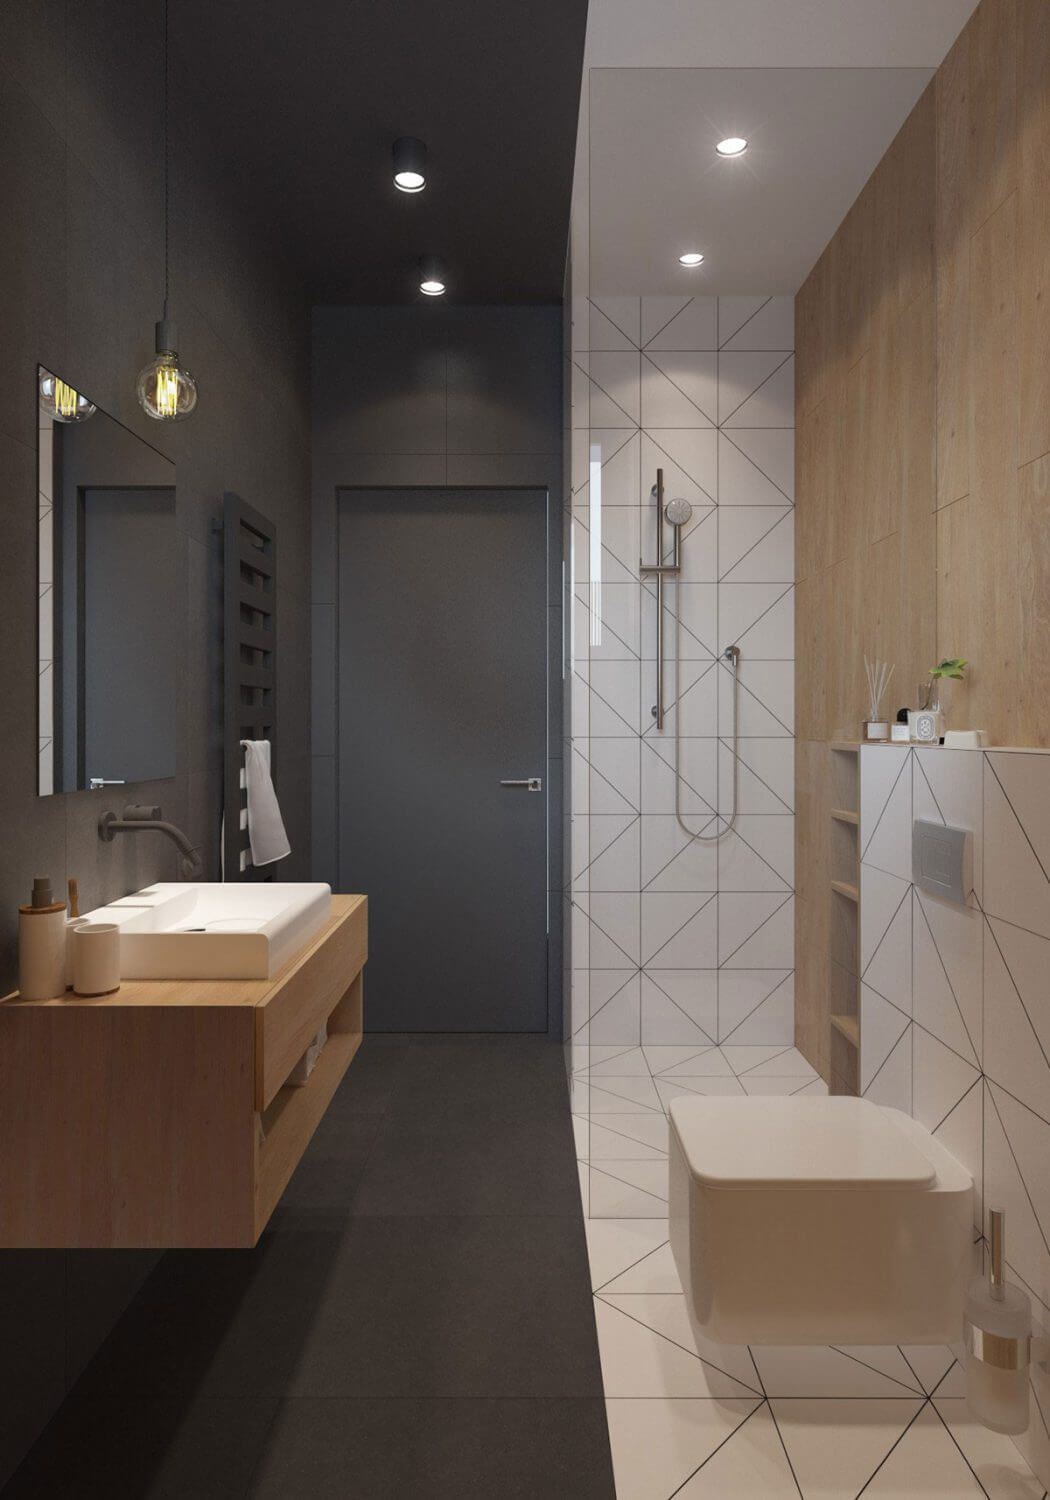 Small rectangular decorated bathroom